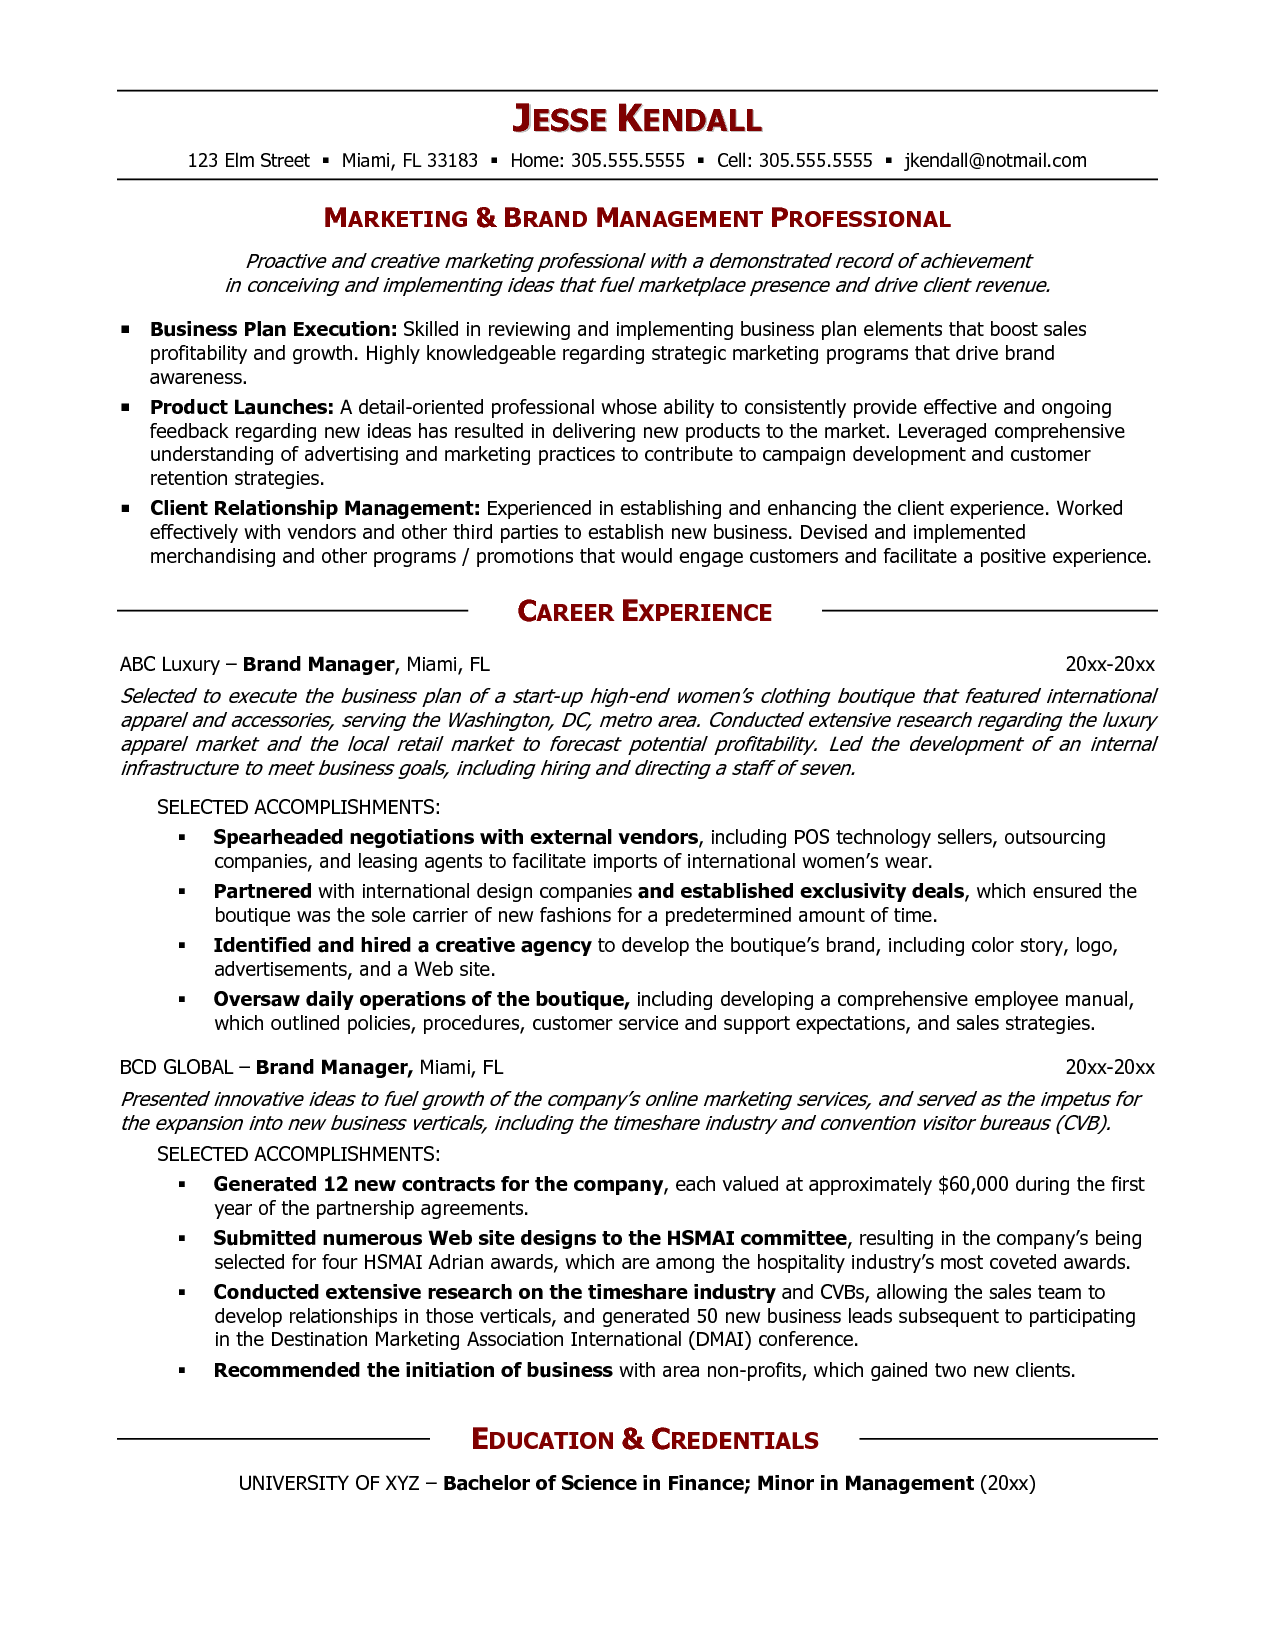 Management Resume Examples Adorable Senior Logistic Management Resume  Brand Manager Resume Example